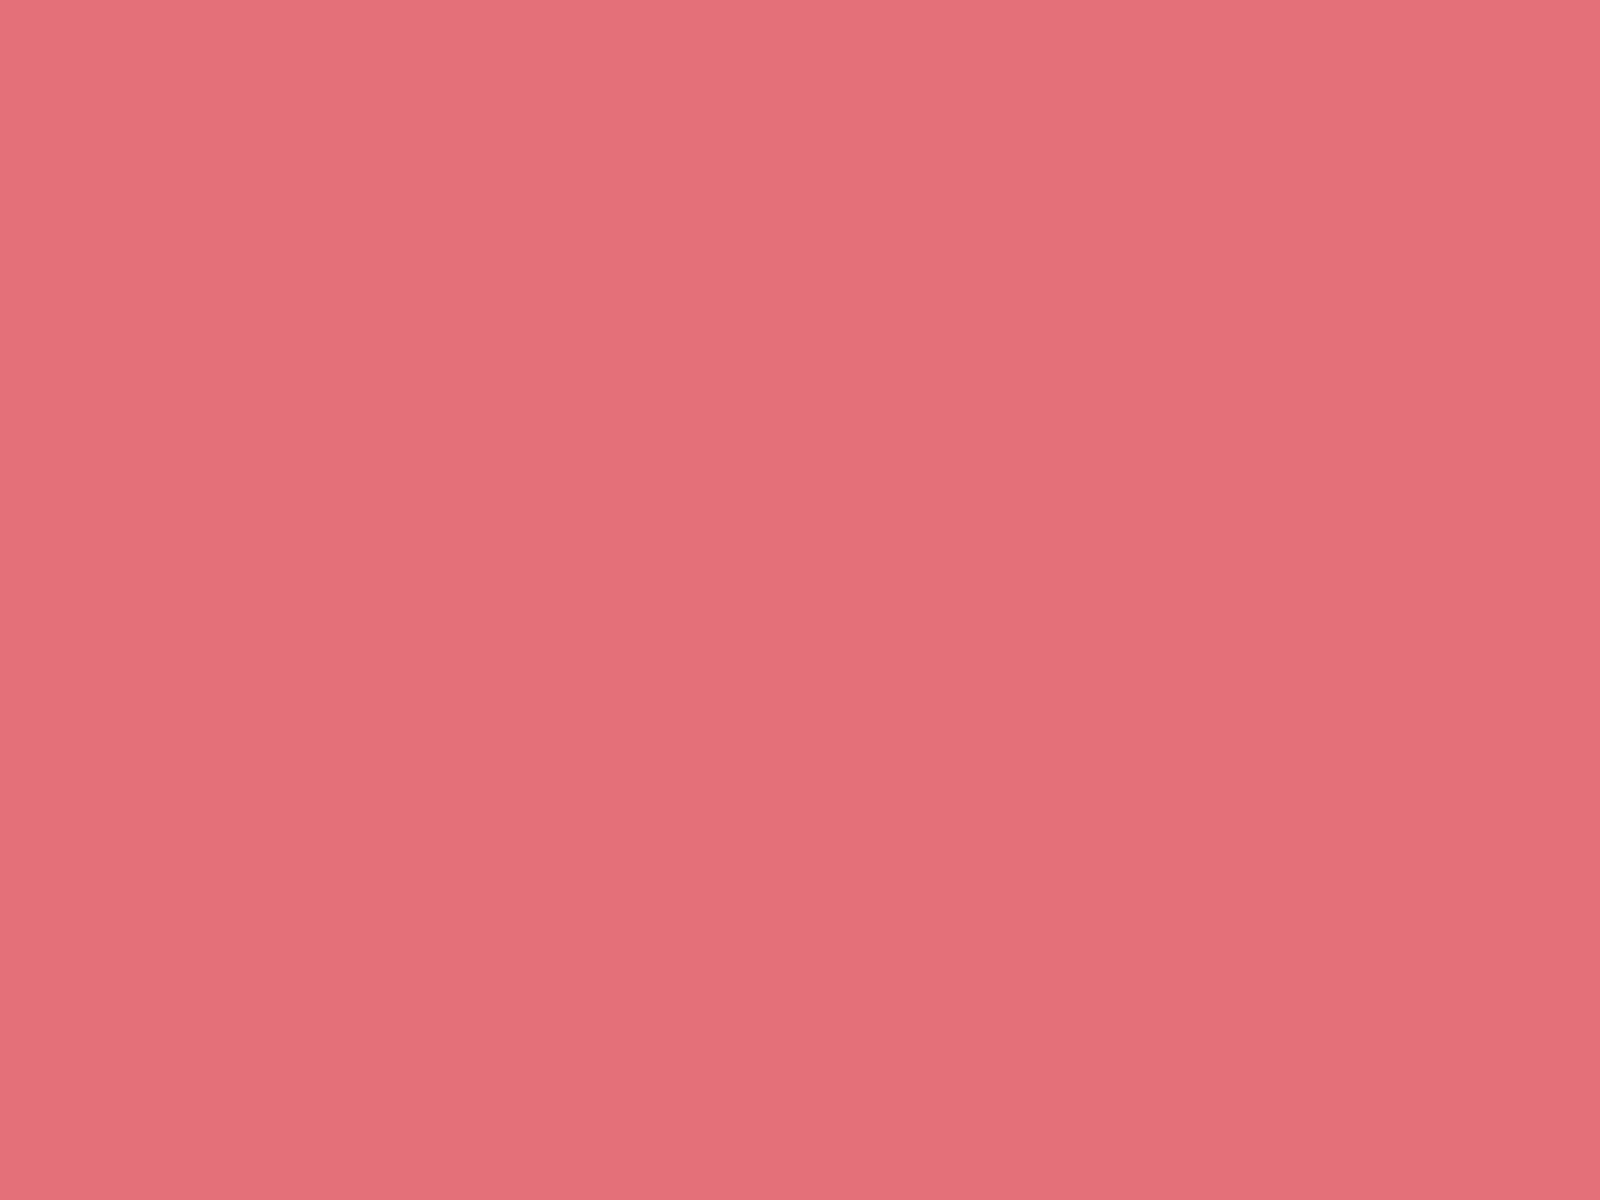 1600x1200 Candy Pink Solid Color Background